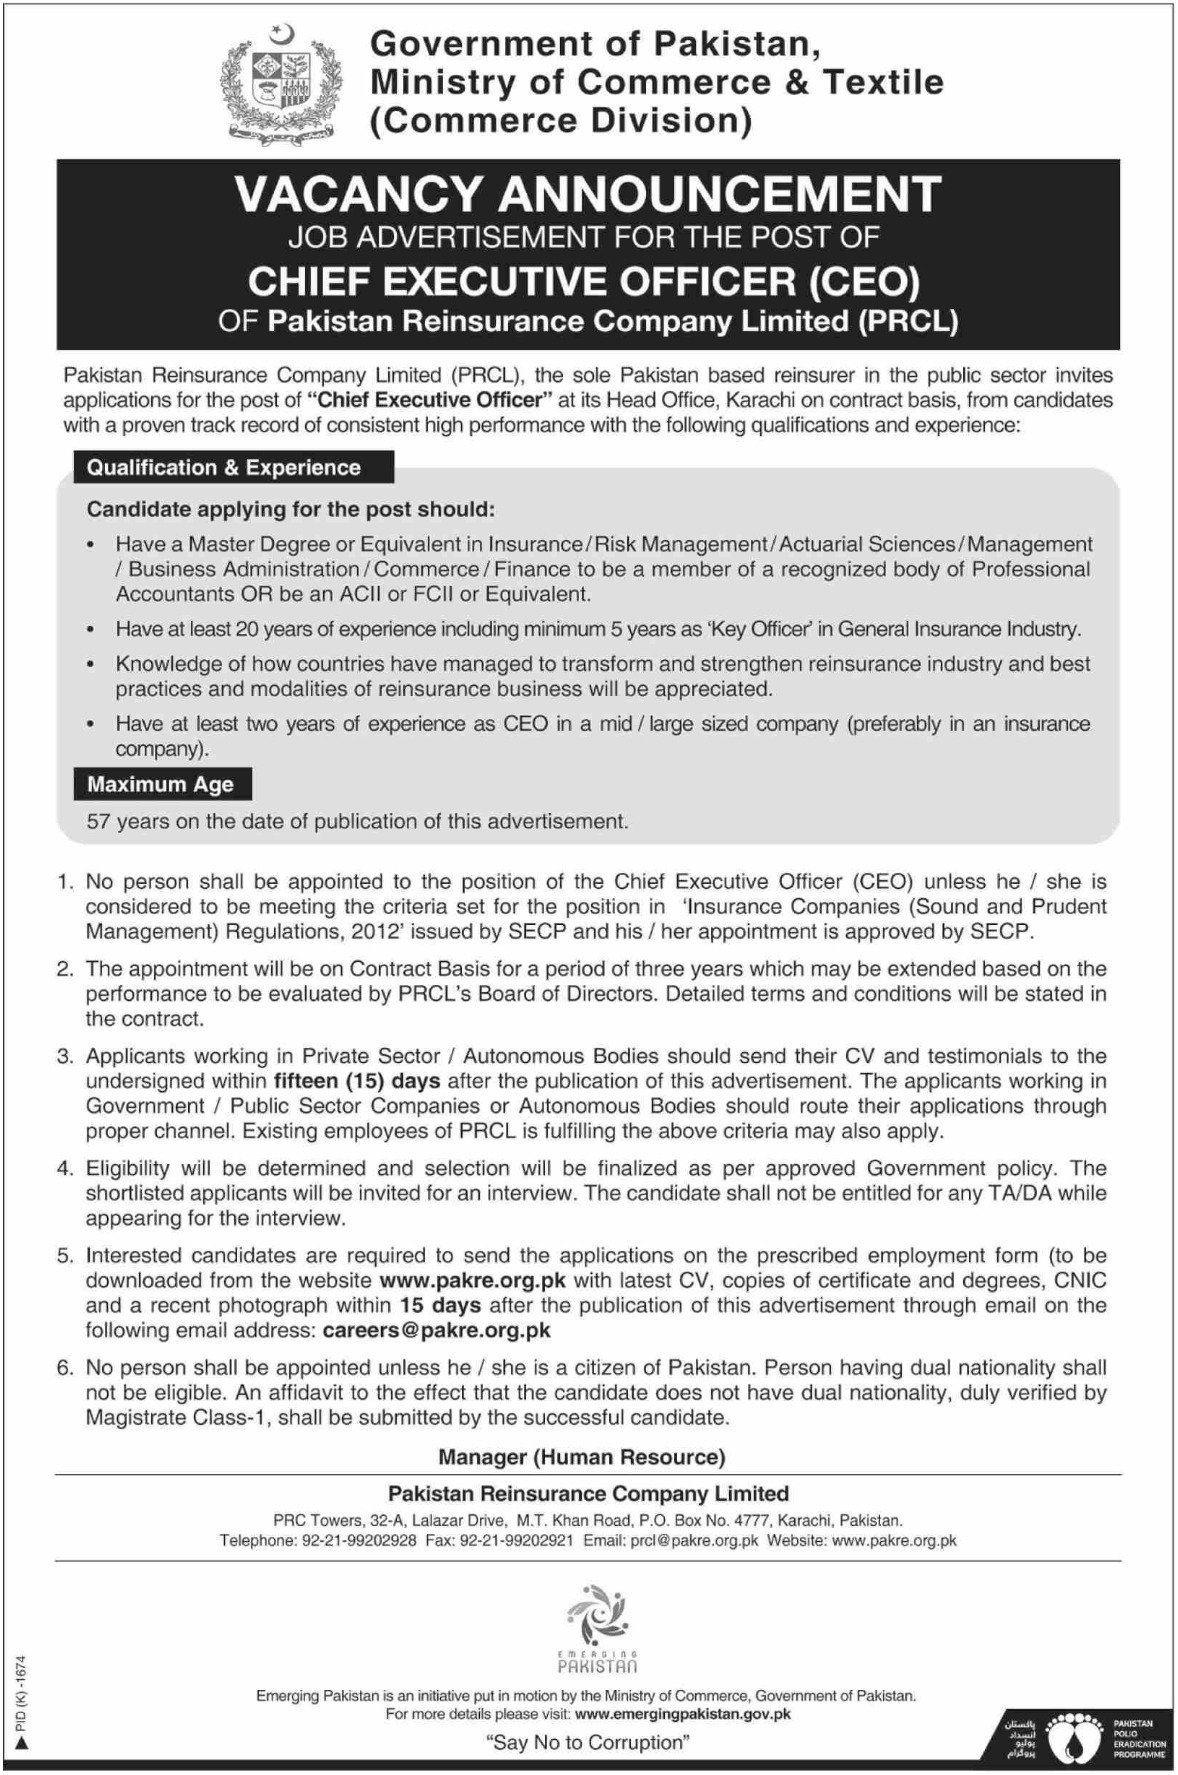 Ministry of Commerce & Textile Jobs 2019 Pakistan